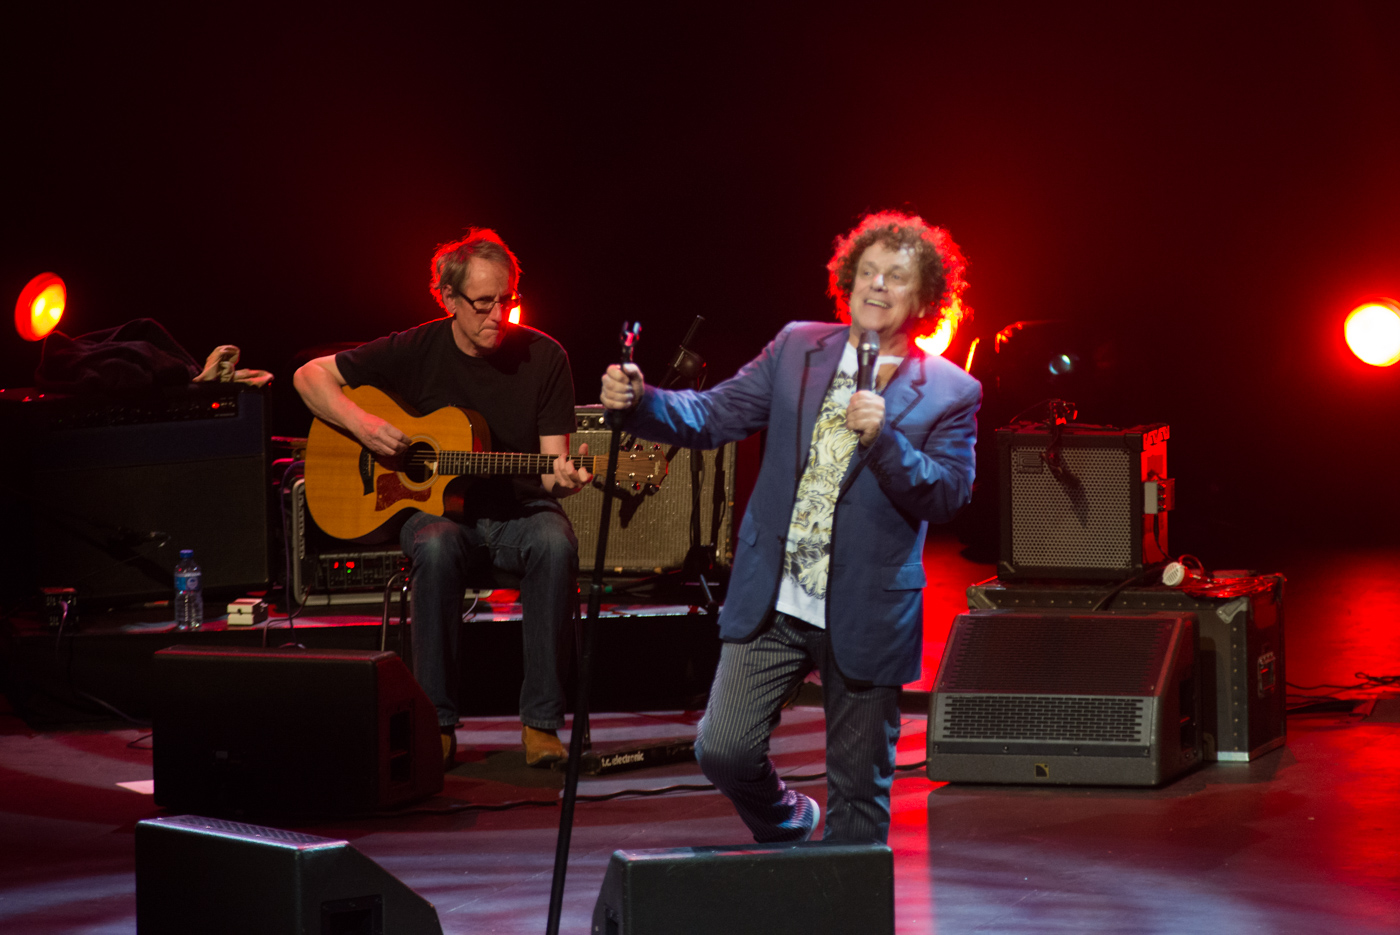 Leo Sayer at Bord Gais Energy Theatre by Sean Smyth (16-10-15) (41 of 129)